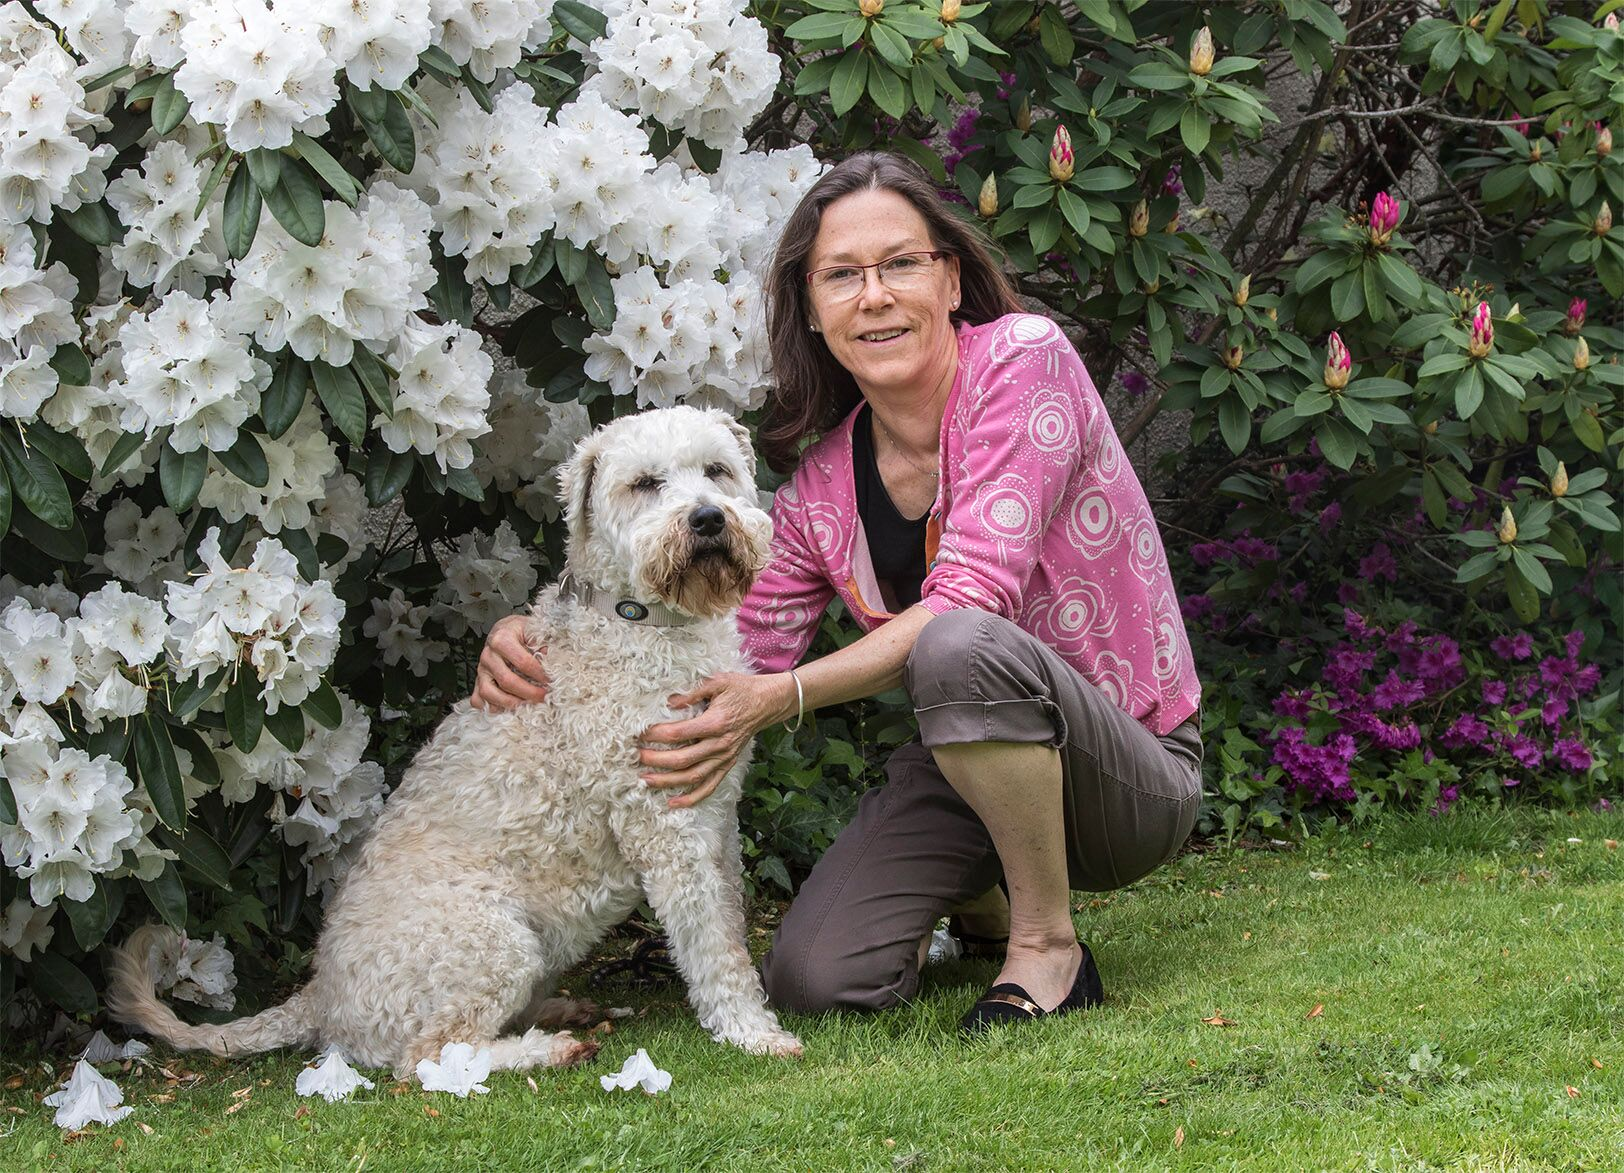 Kathy Reid Photography   Living with the seasons plays a vital role in the bio-rhythm of our health. Sara is pictured here with her family's Irish wheaten terrier, Piko, in the spring time of her garden.